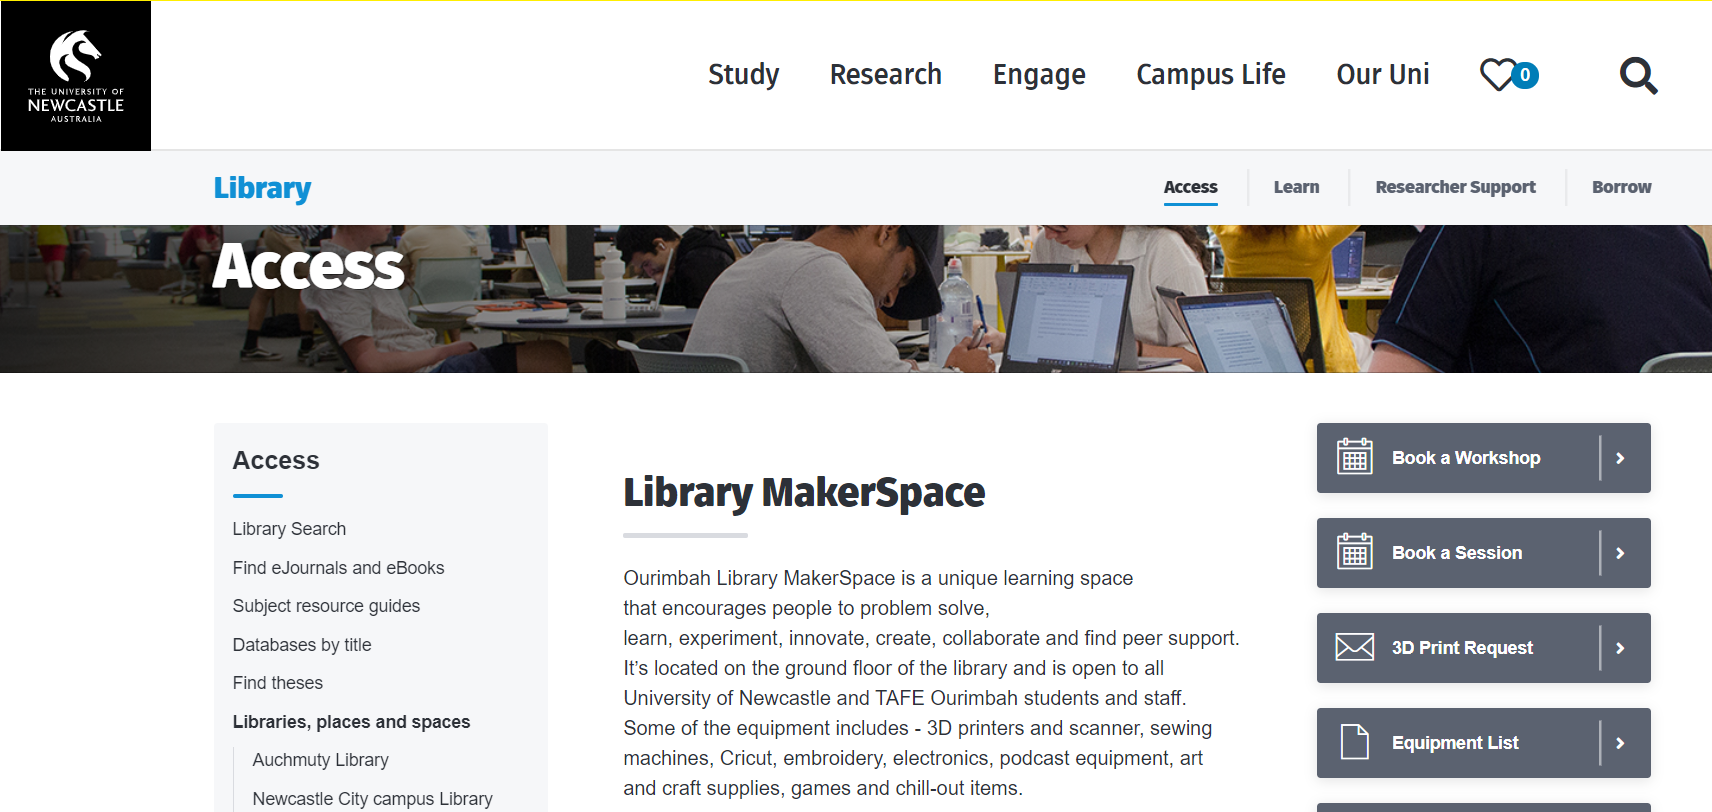 The library provides a range of support services to researchers